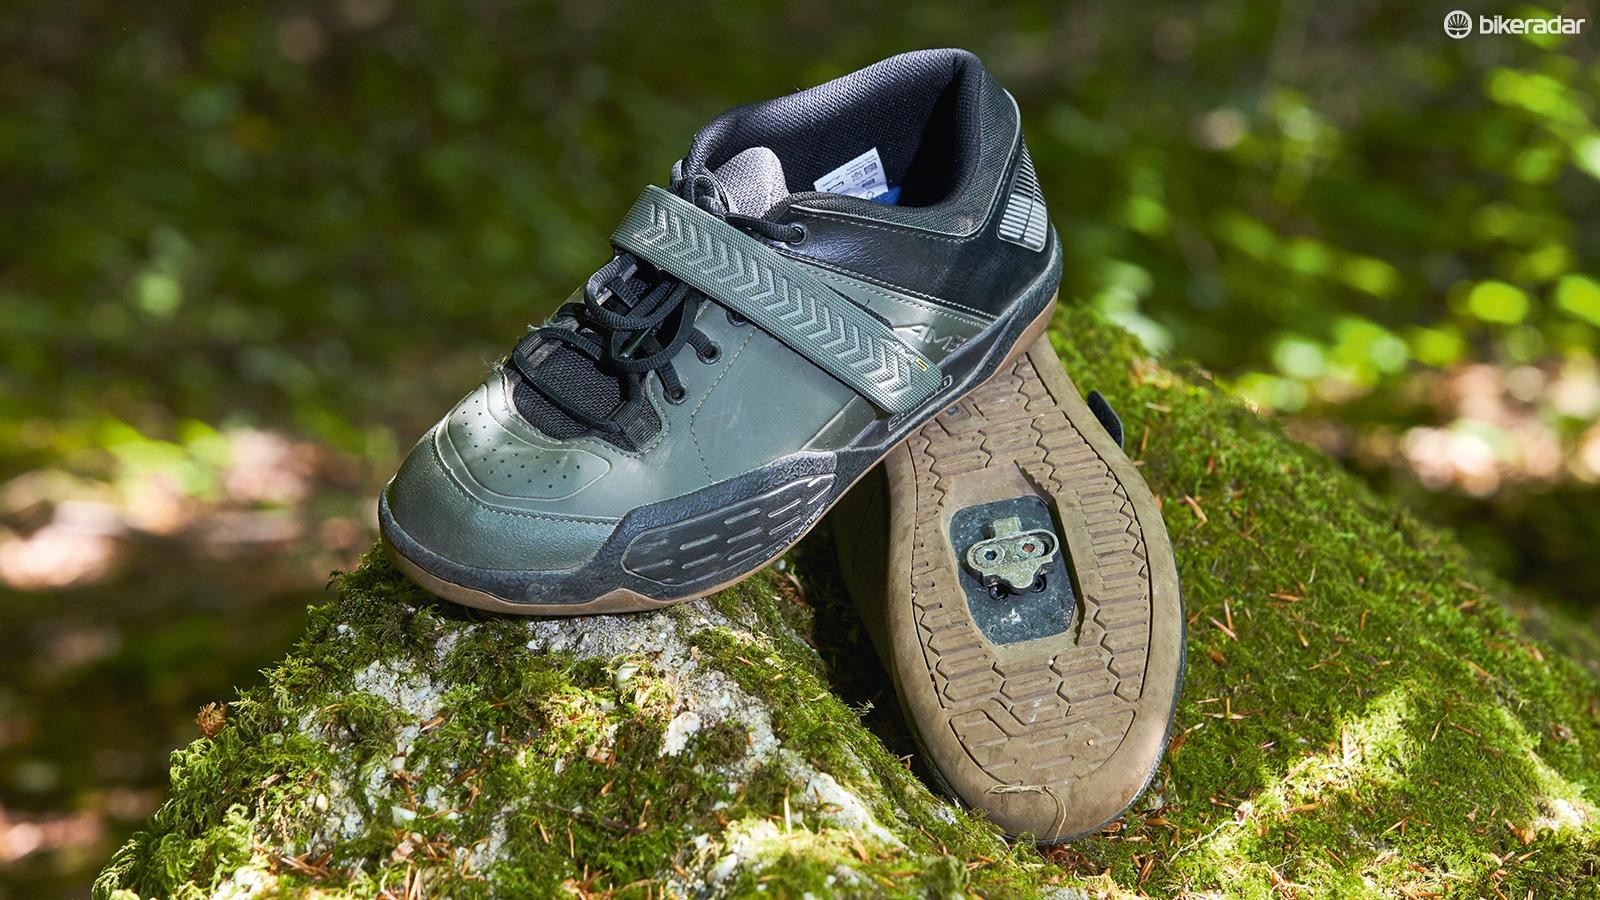 Shimano's AM5 MTB shoes are great for gravity fiends on a budget